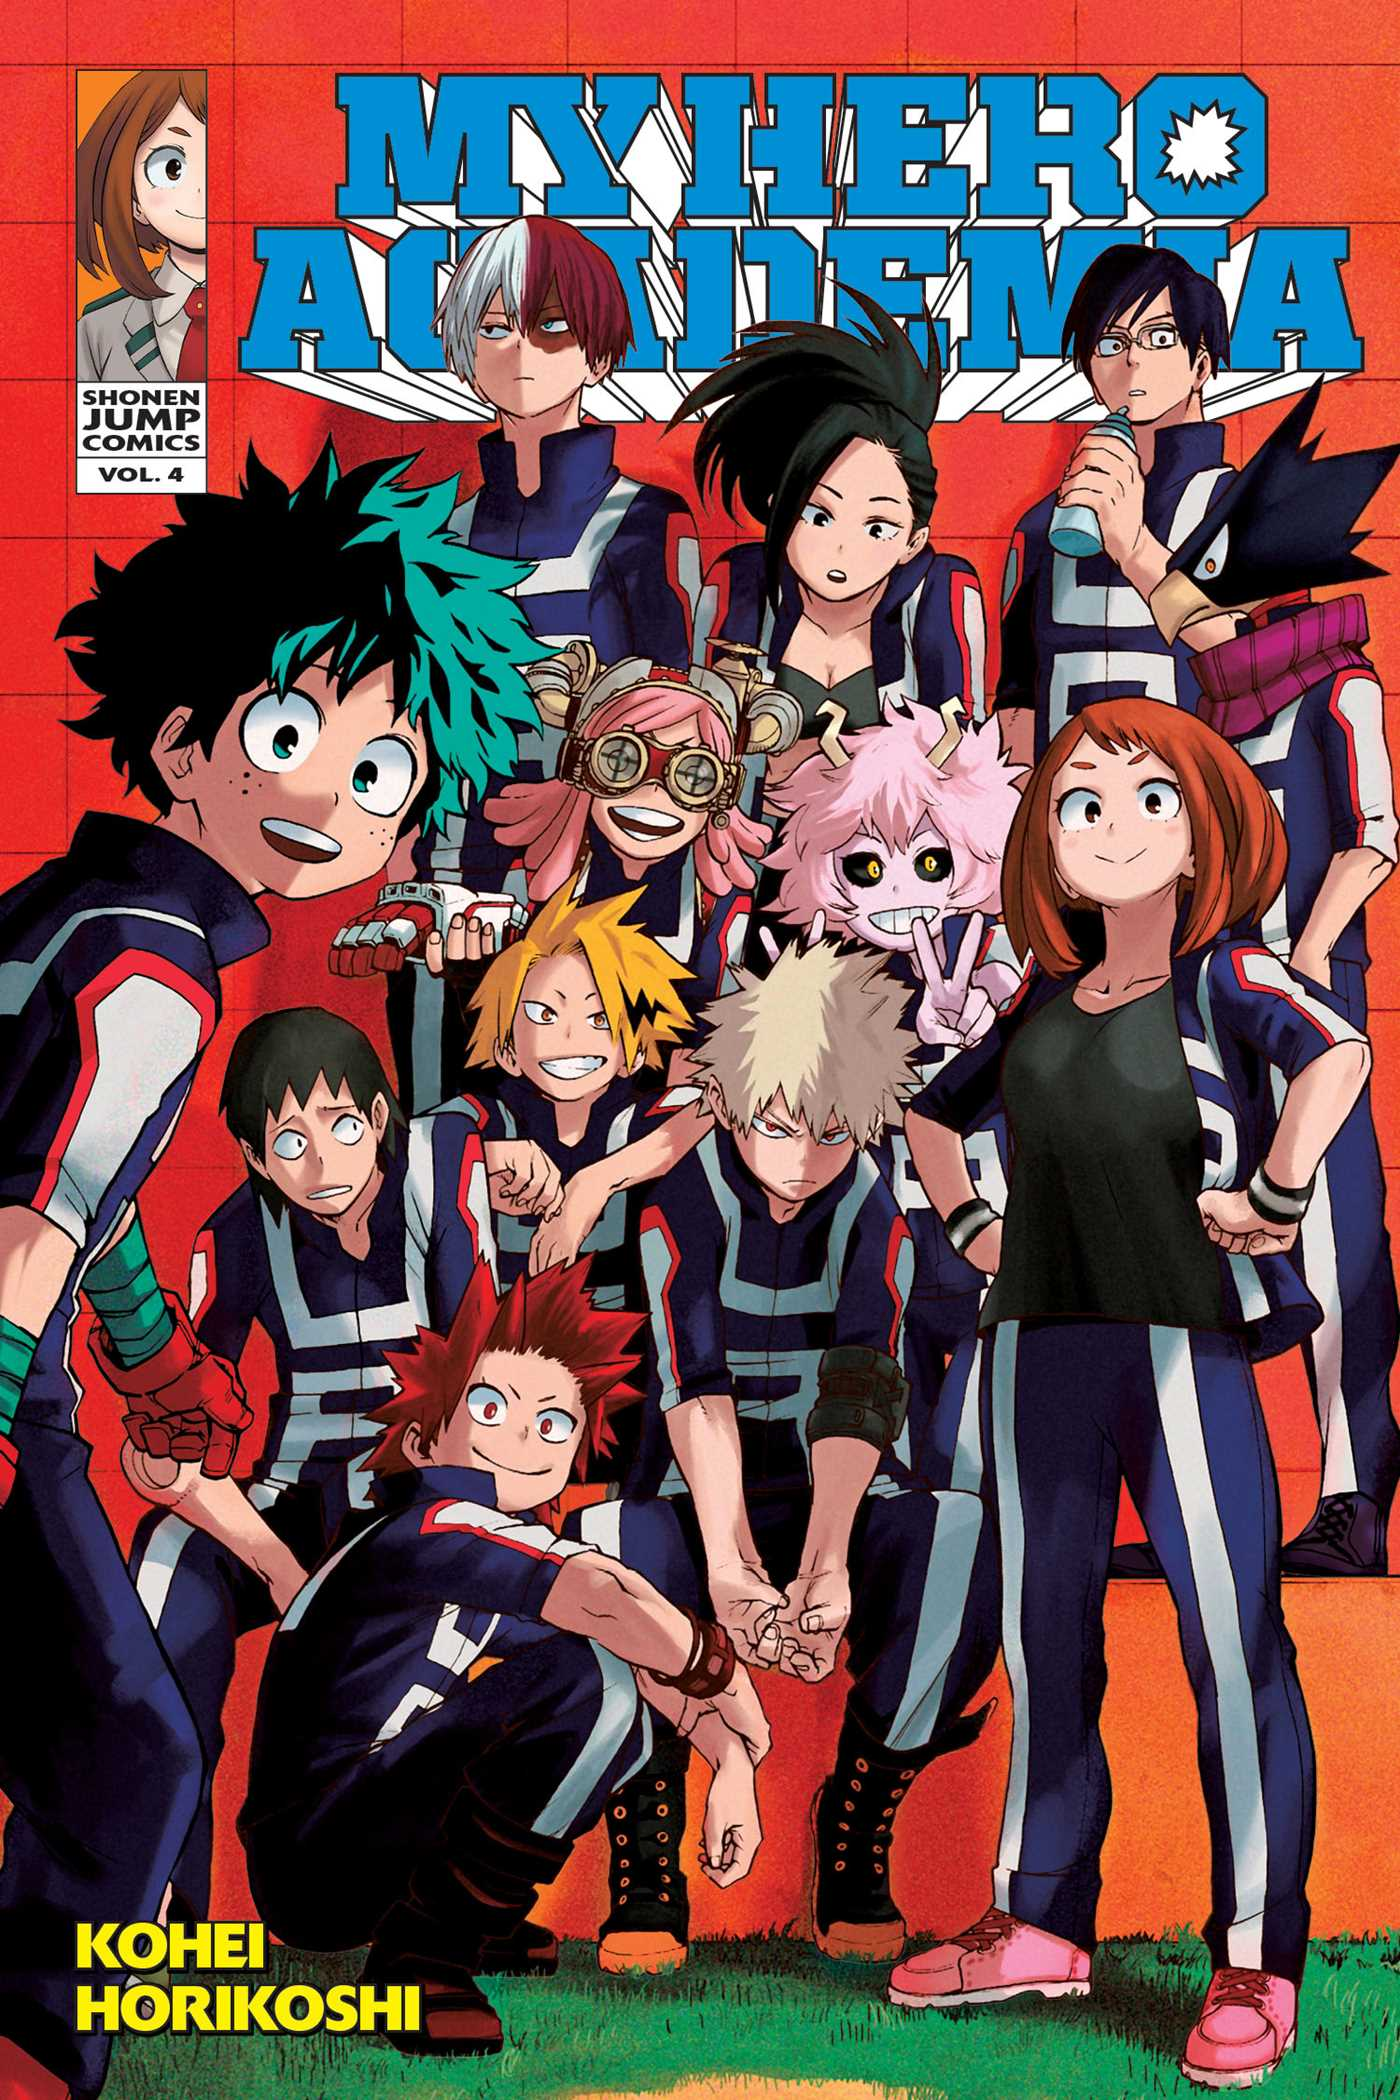 My Hero Academia, Vol. 4 | Book by Kohei Horikoshi | Official Publisher Page | Simon & Schuster